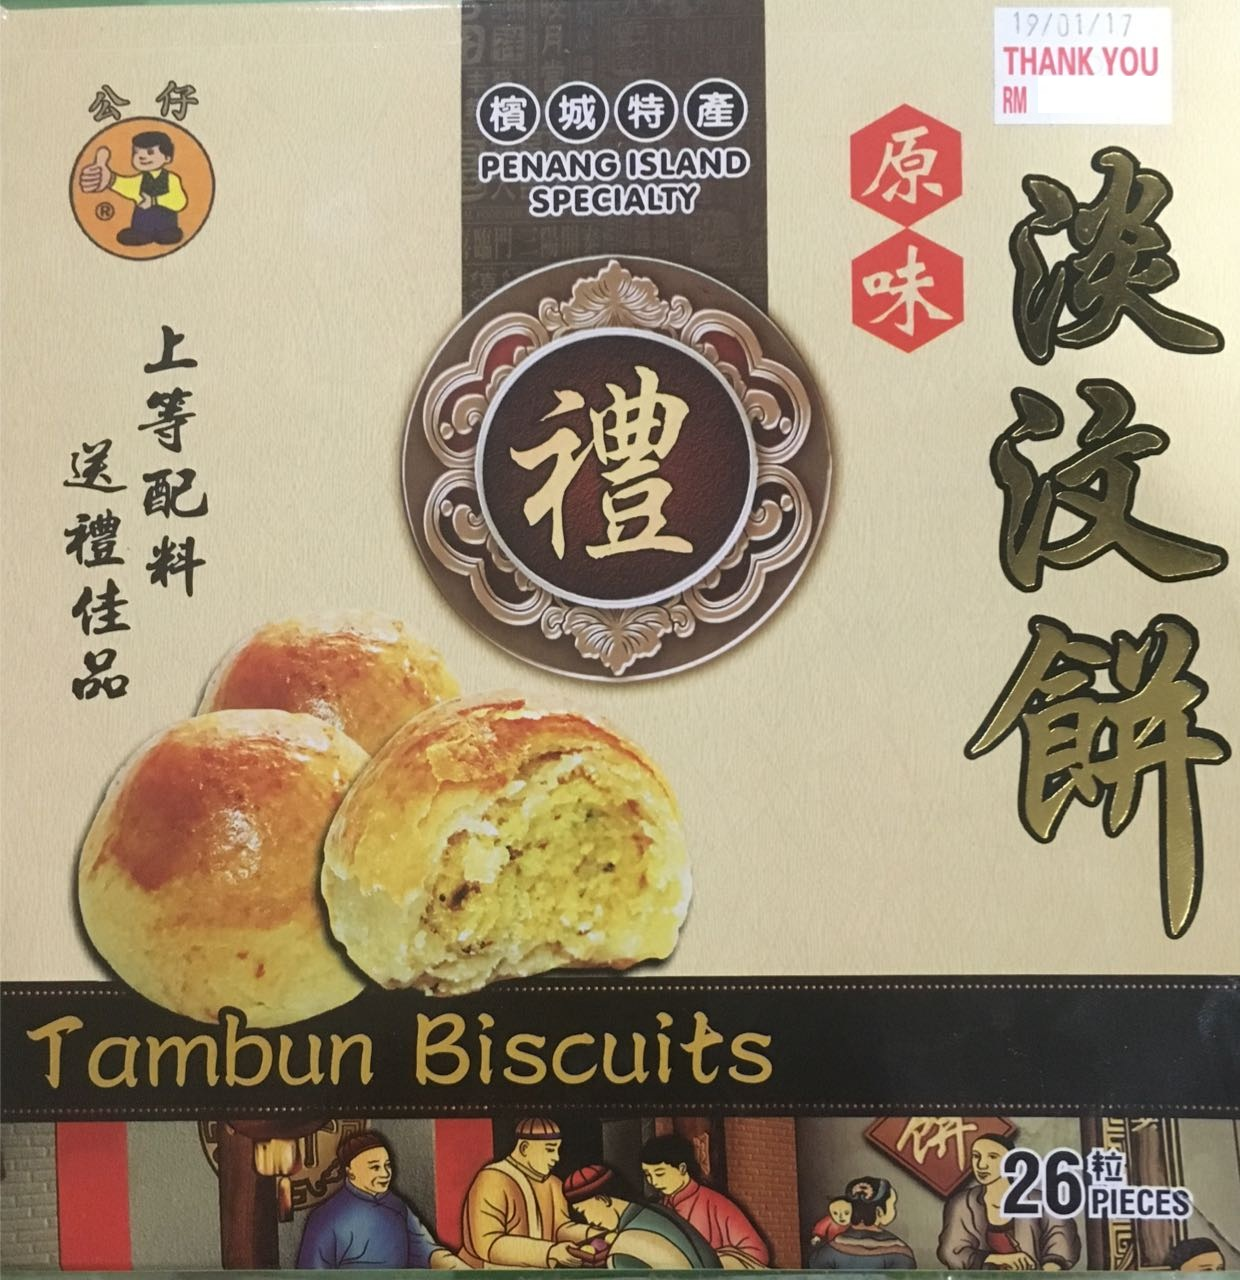 Tambun Biscuits - Penang Island Specialty